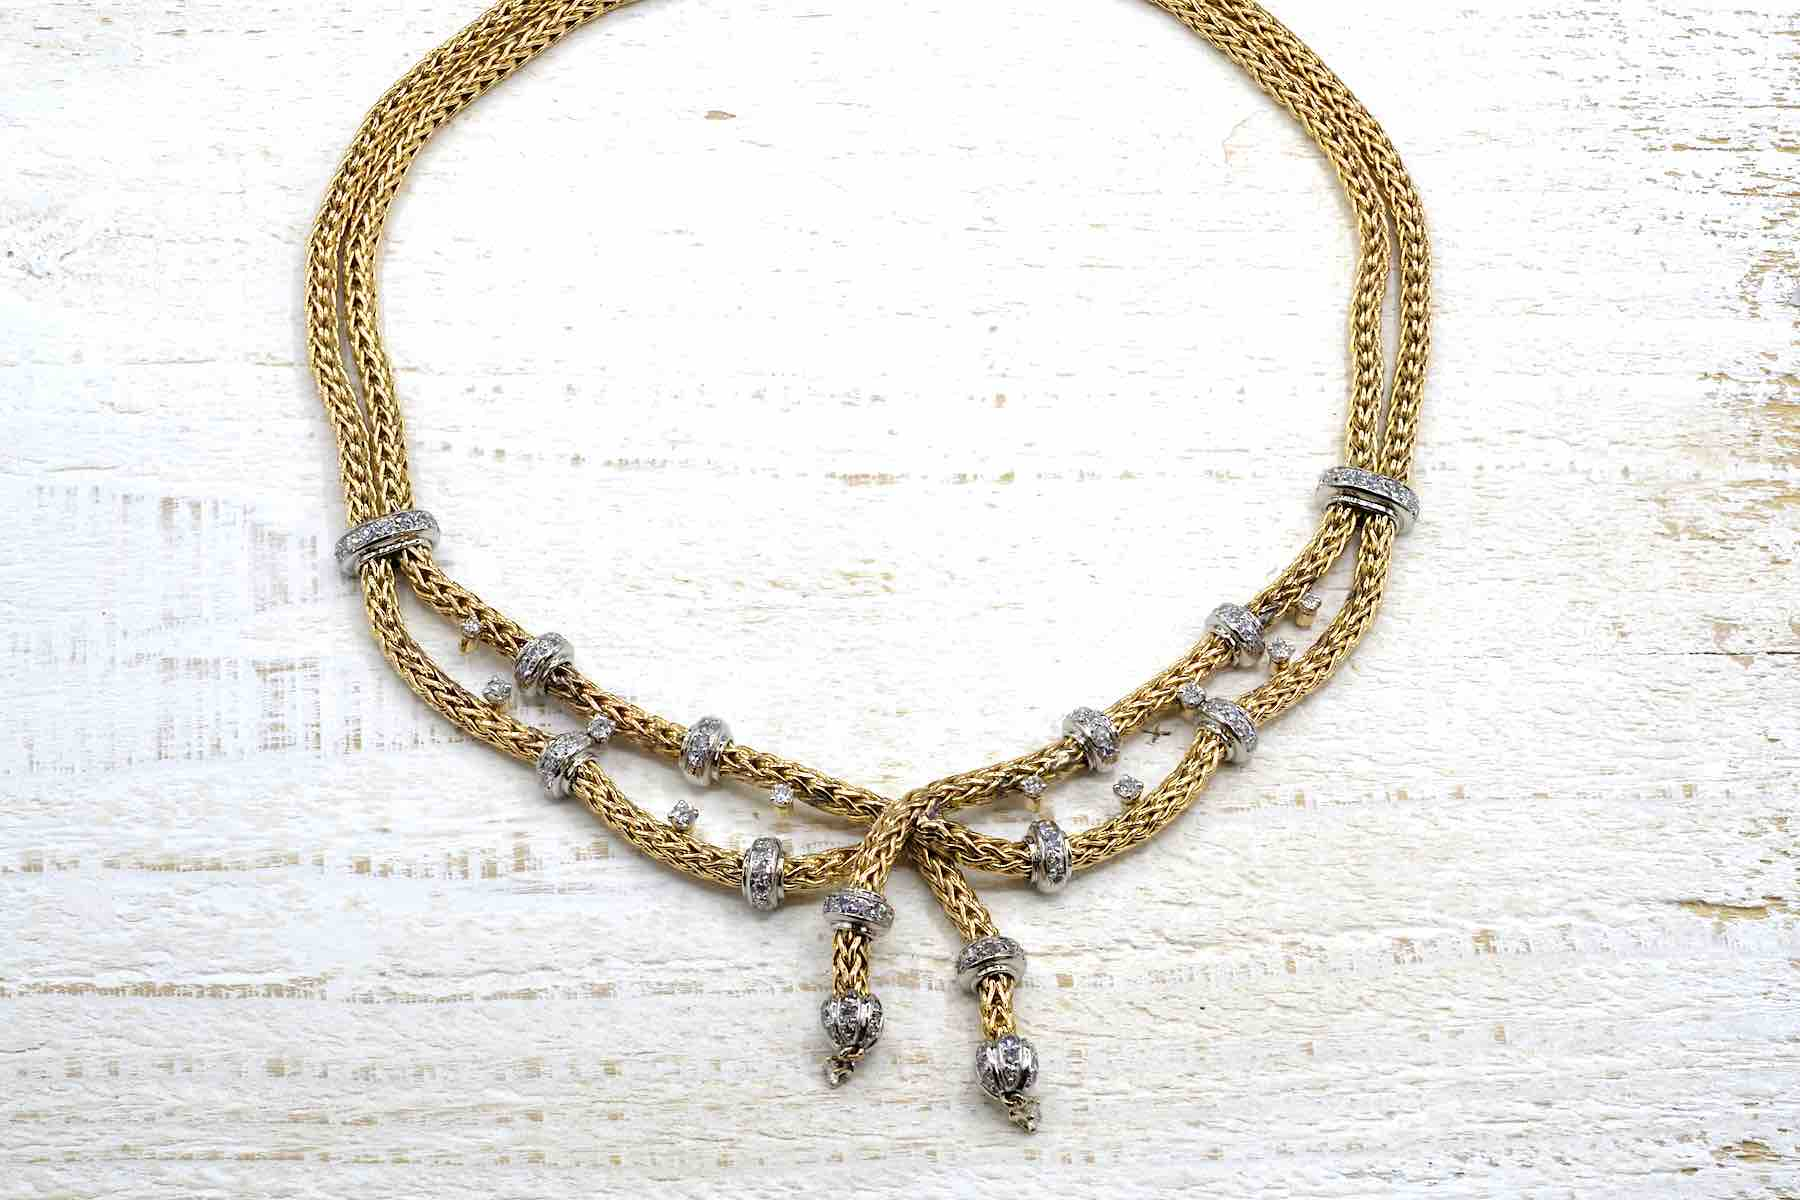 Collier Mauboussin d'occasion or 18k